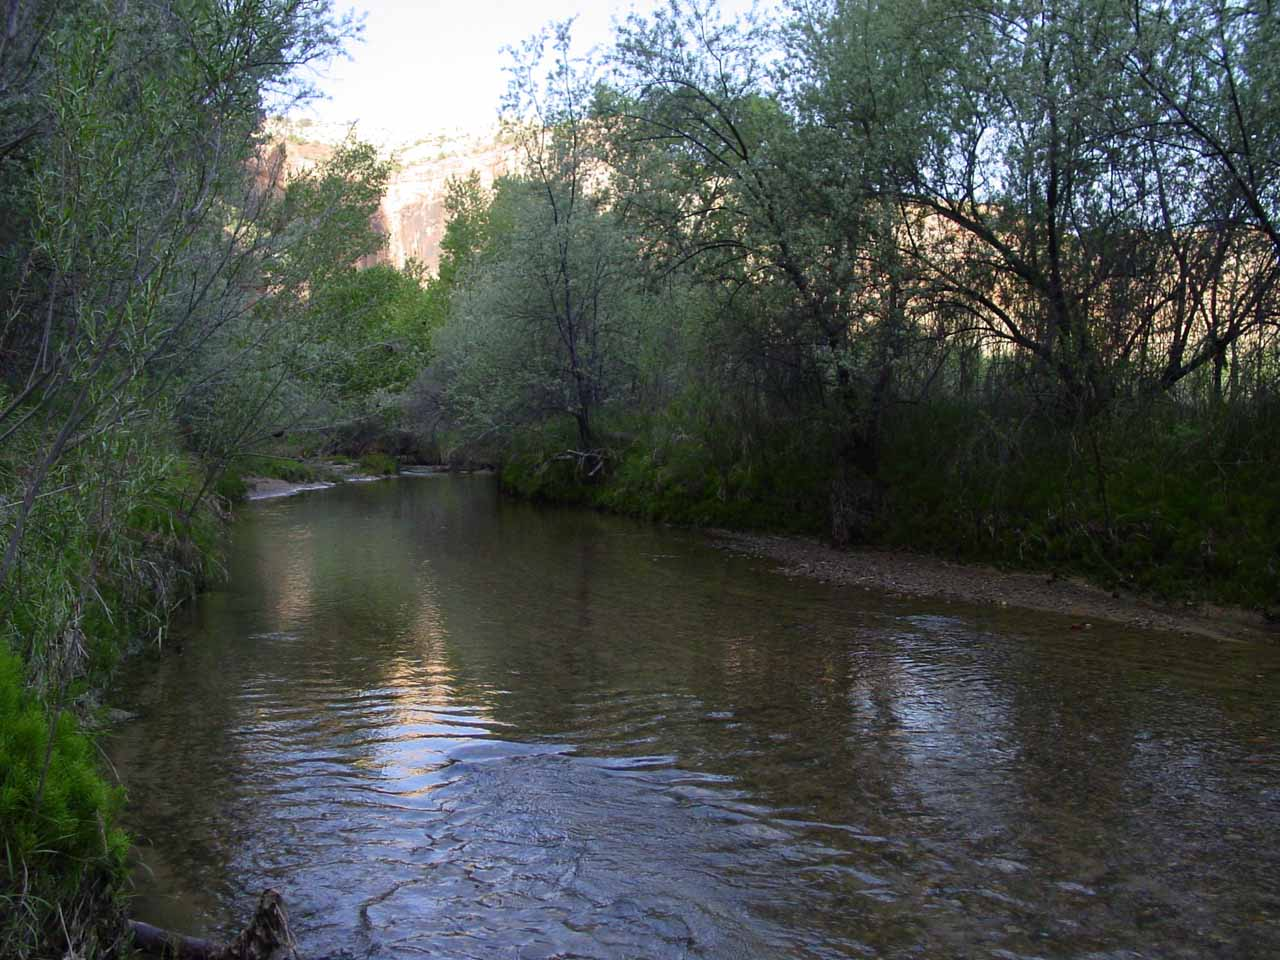 Along the Escalante River